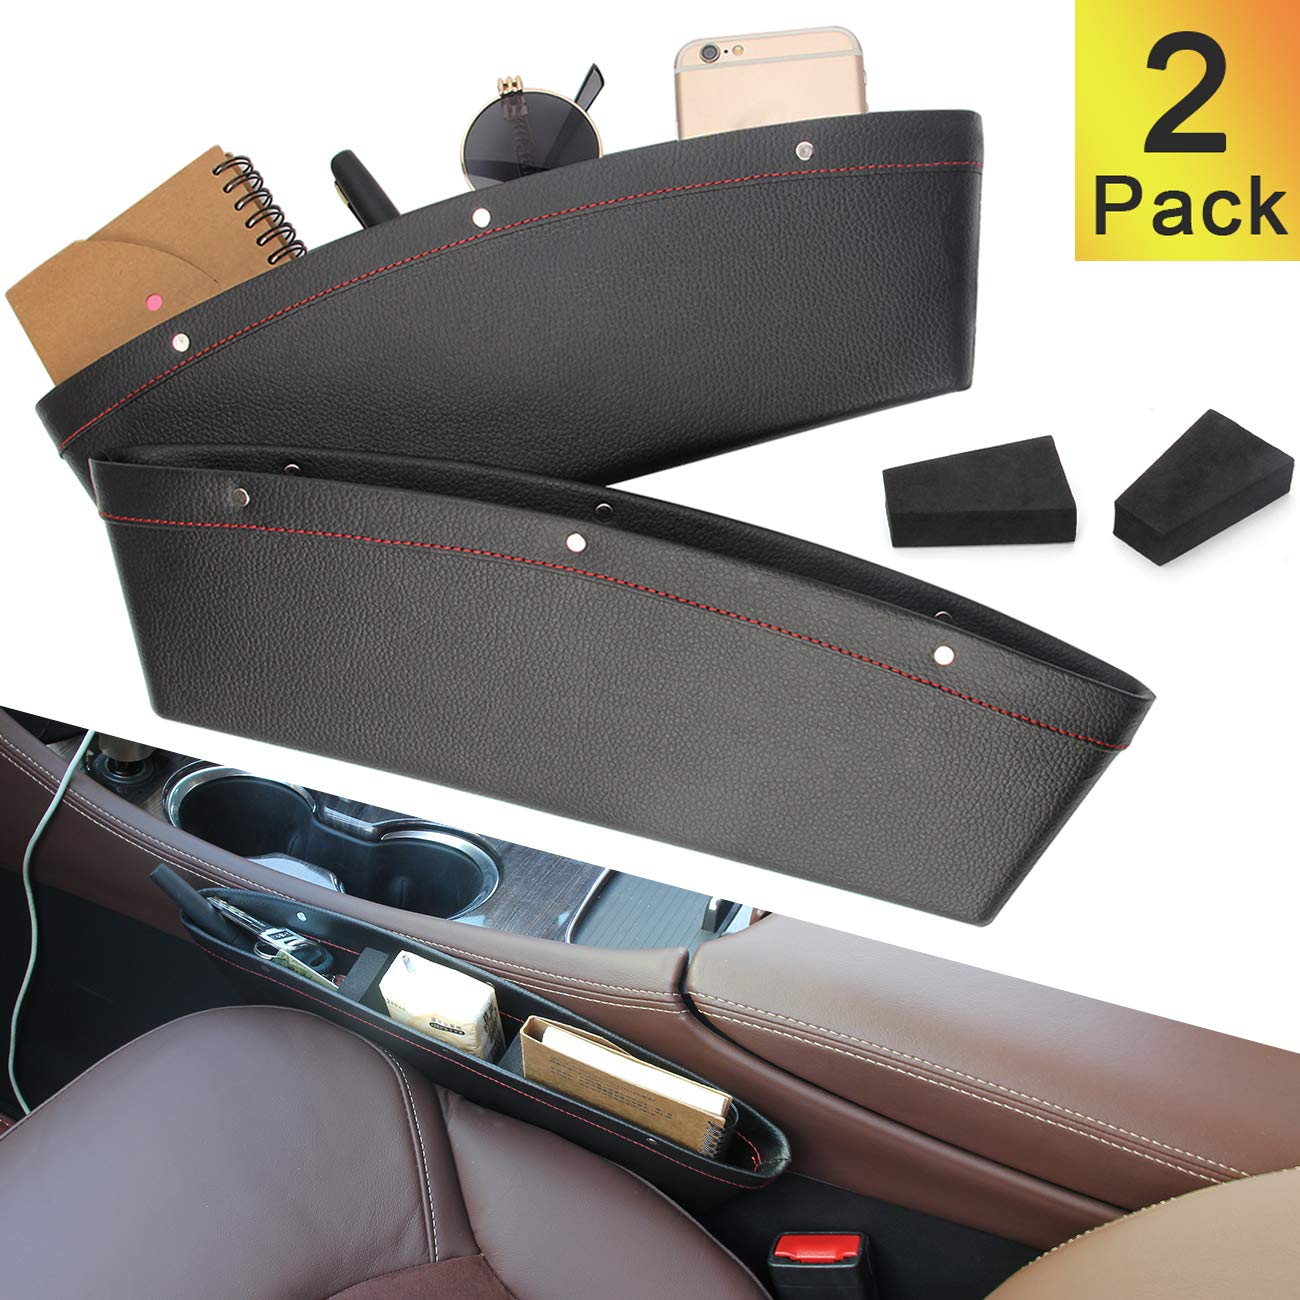 Coolrunner 2 Set Car Seat Gap Organizer, Car Seat Gap Filler, PU Full Leather Car Seat Crevice Storage Box Universal Fit in Between Car Seat Catcher for Phone Keys Cards Pens Coins(Black) by Coolrunner